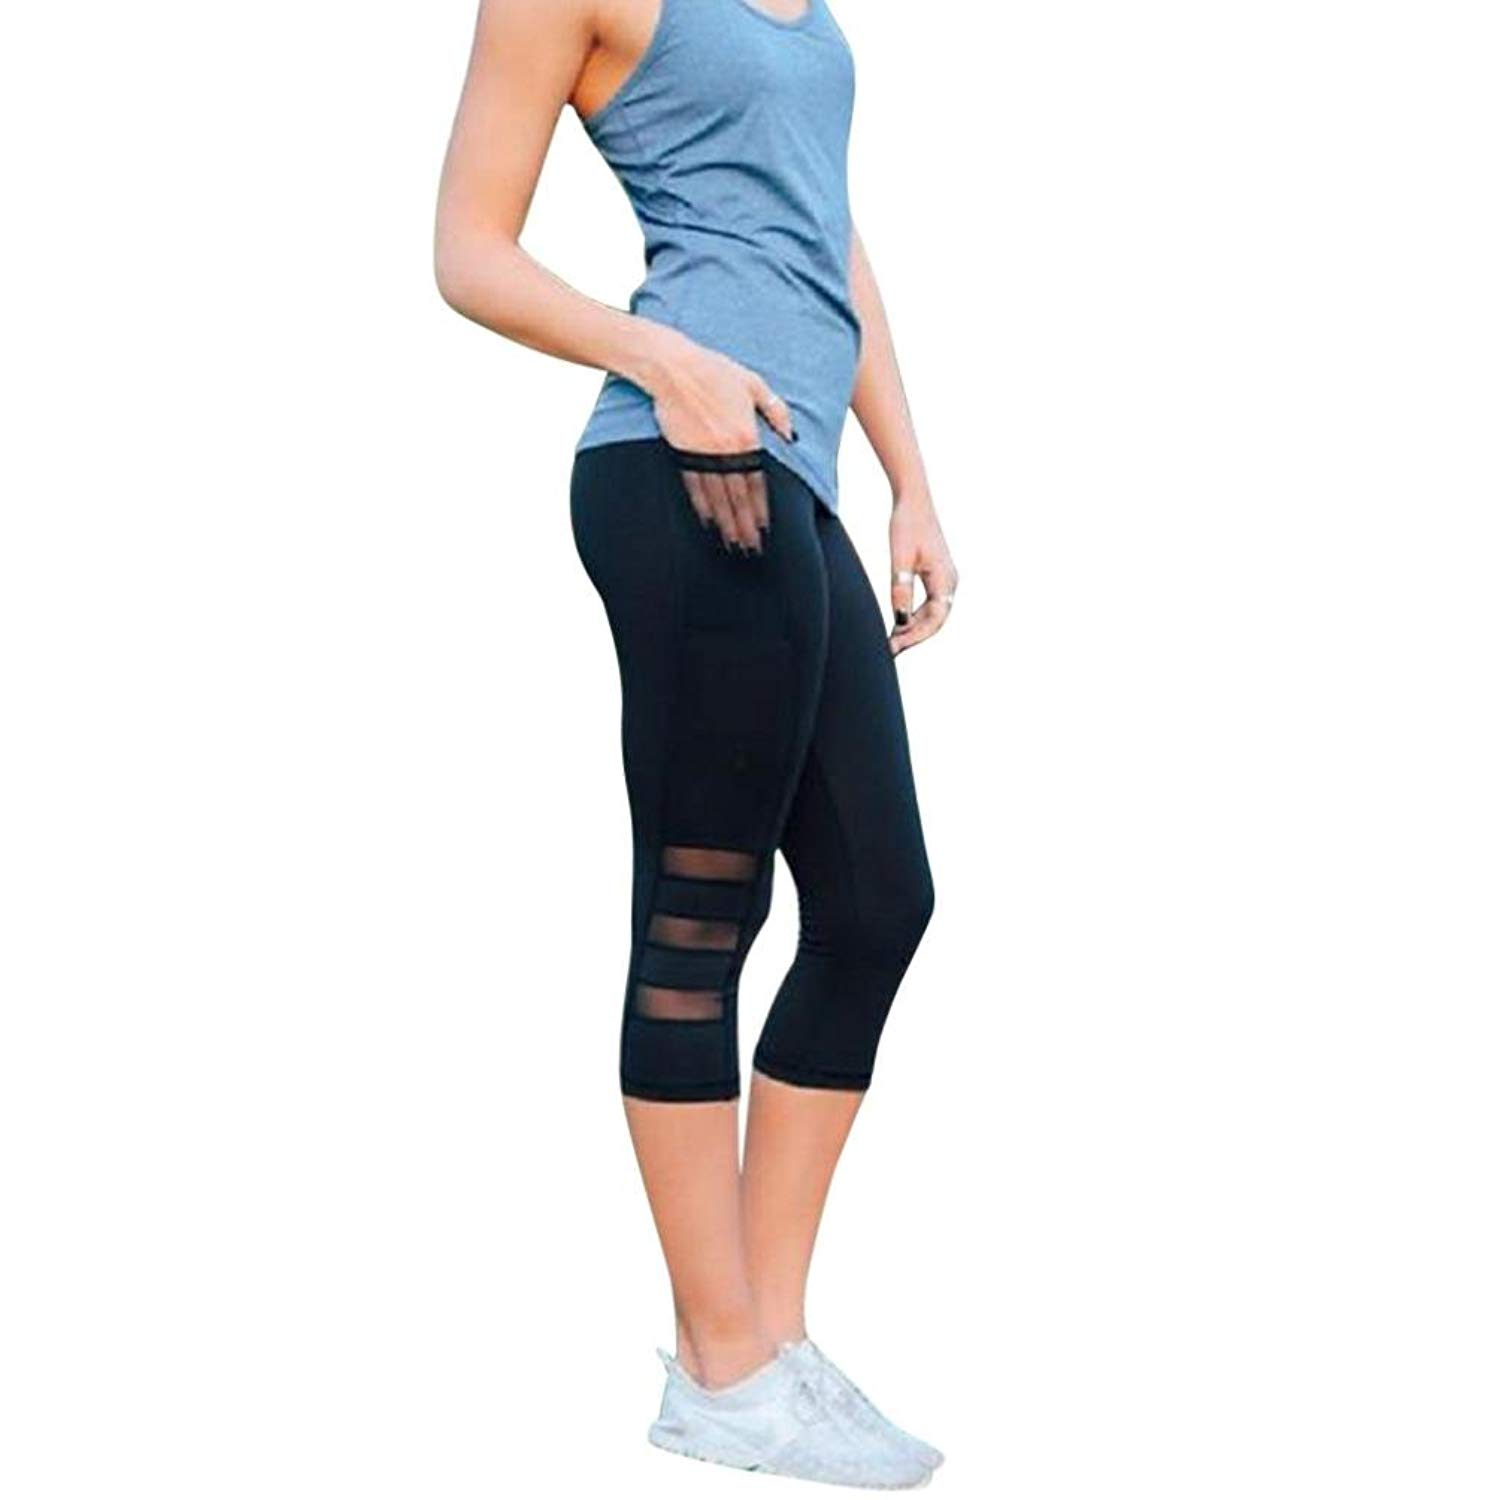 c8ccb2f416810 Mikkar Womens Sports Pants Skinny Leggings Patchwork Mesh Yoga Leggings  Fitness Sale